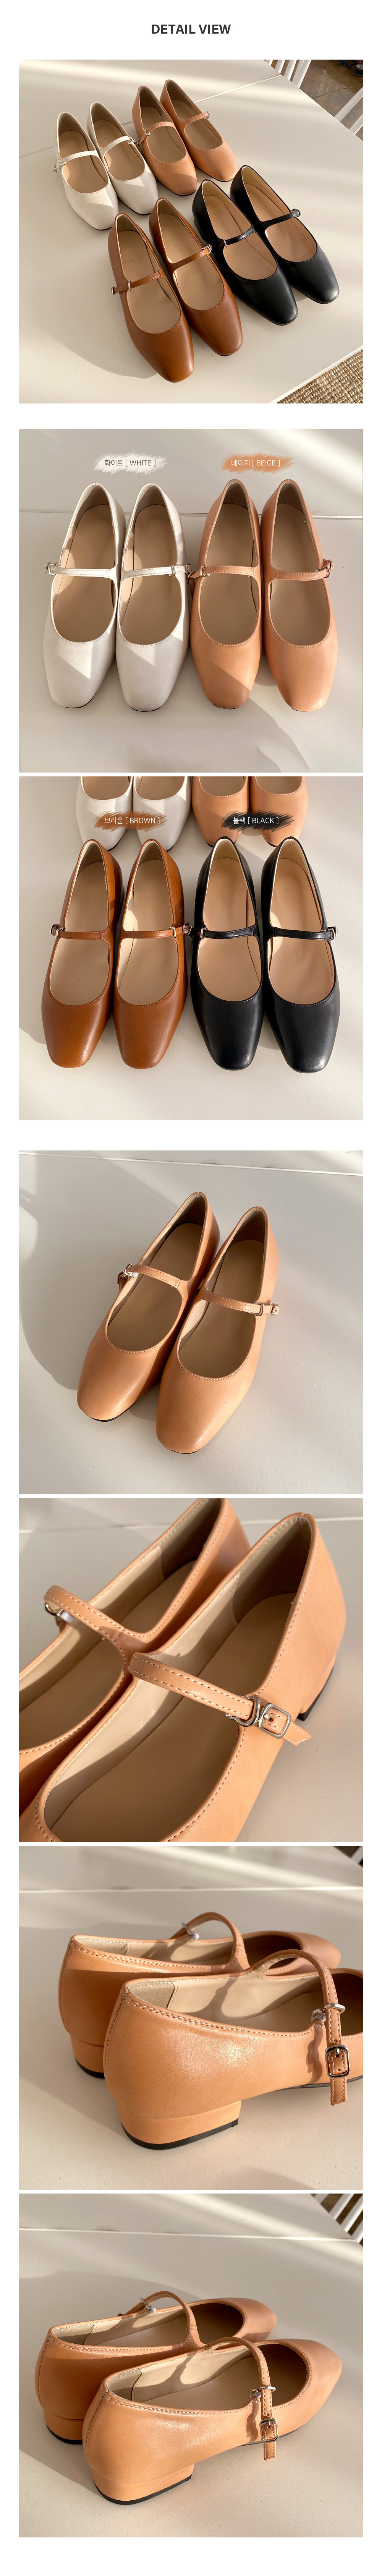 1357 Mary Jane shoes